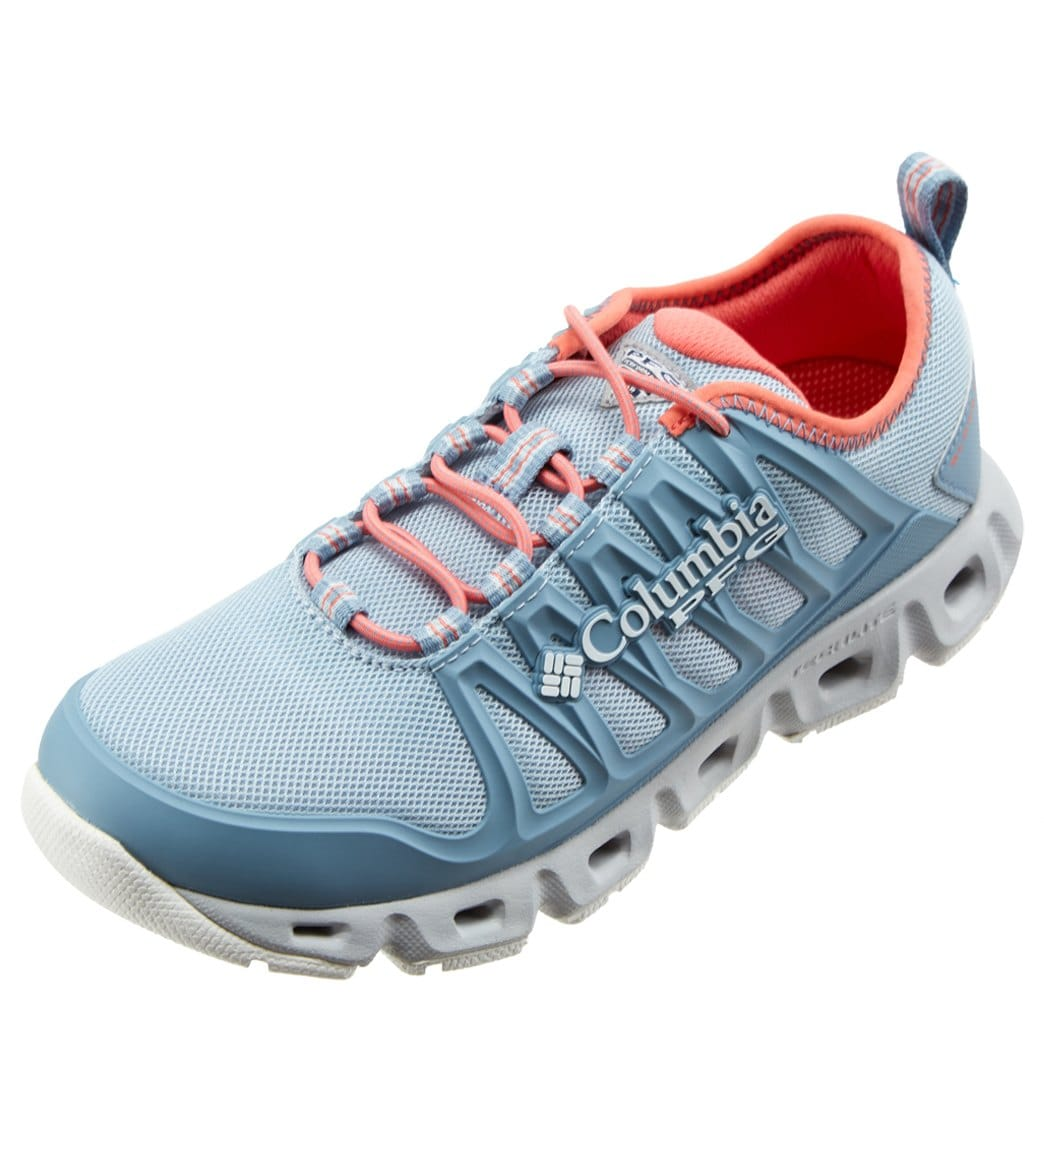 57f2a61caed6 Columbia Women s Megavent II PFG Boat Shoe at SwimOutlet.com - Free Shipping